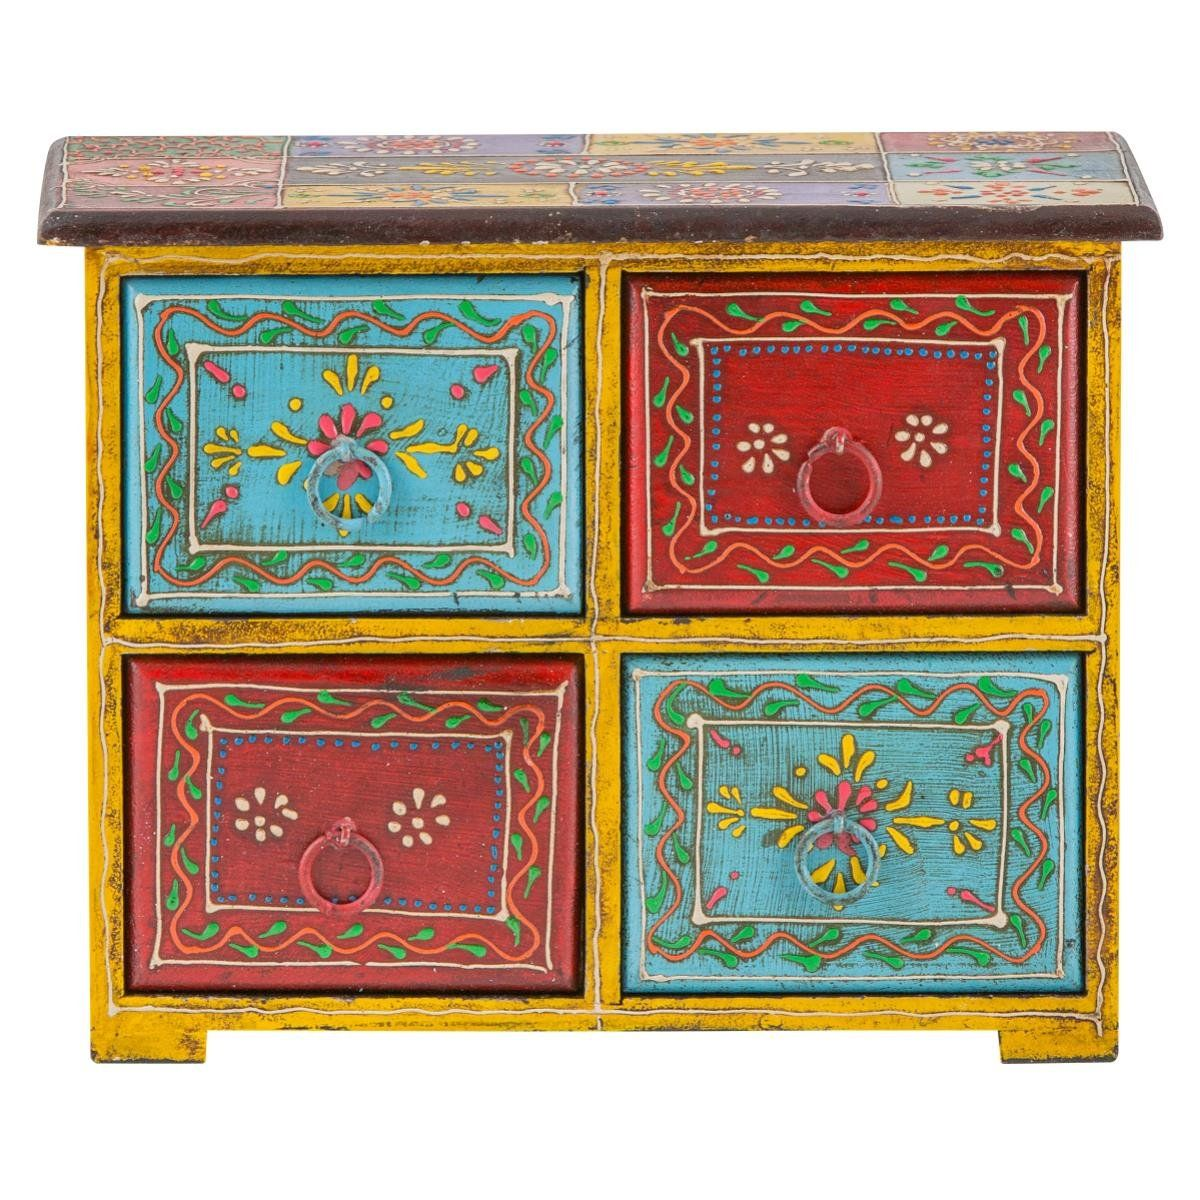 buy popular 8549b d9d99 Indian Painted 4 Drawer Chest: Amazon.co.uk: Beauty | DIY ...